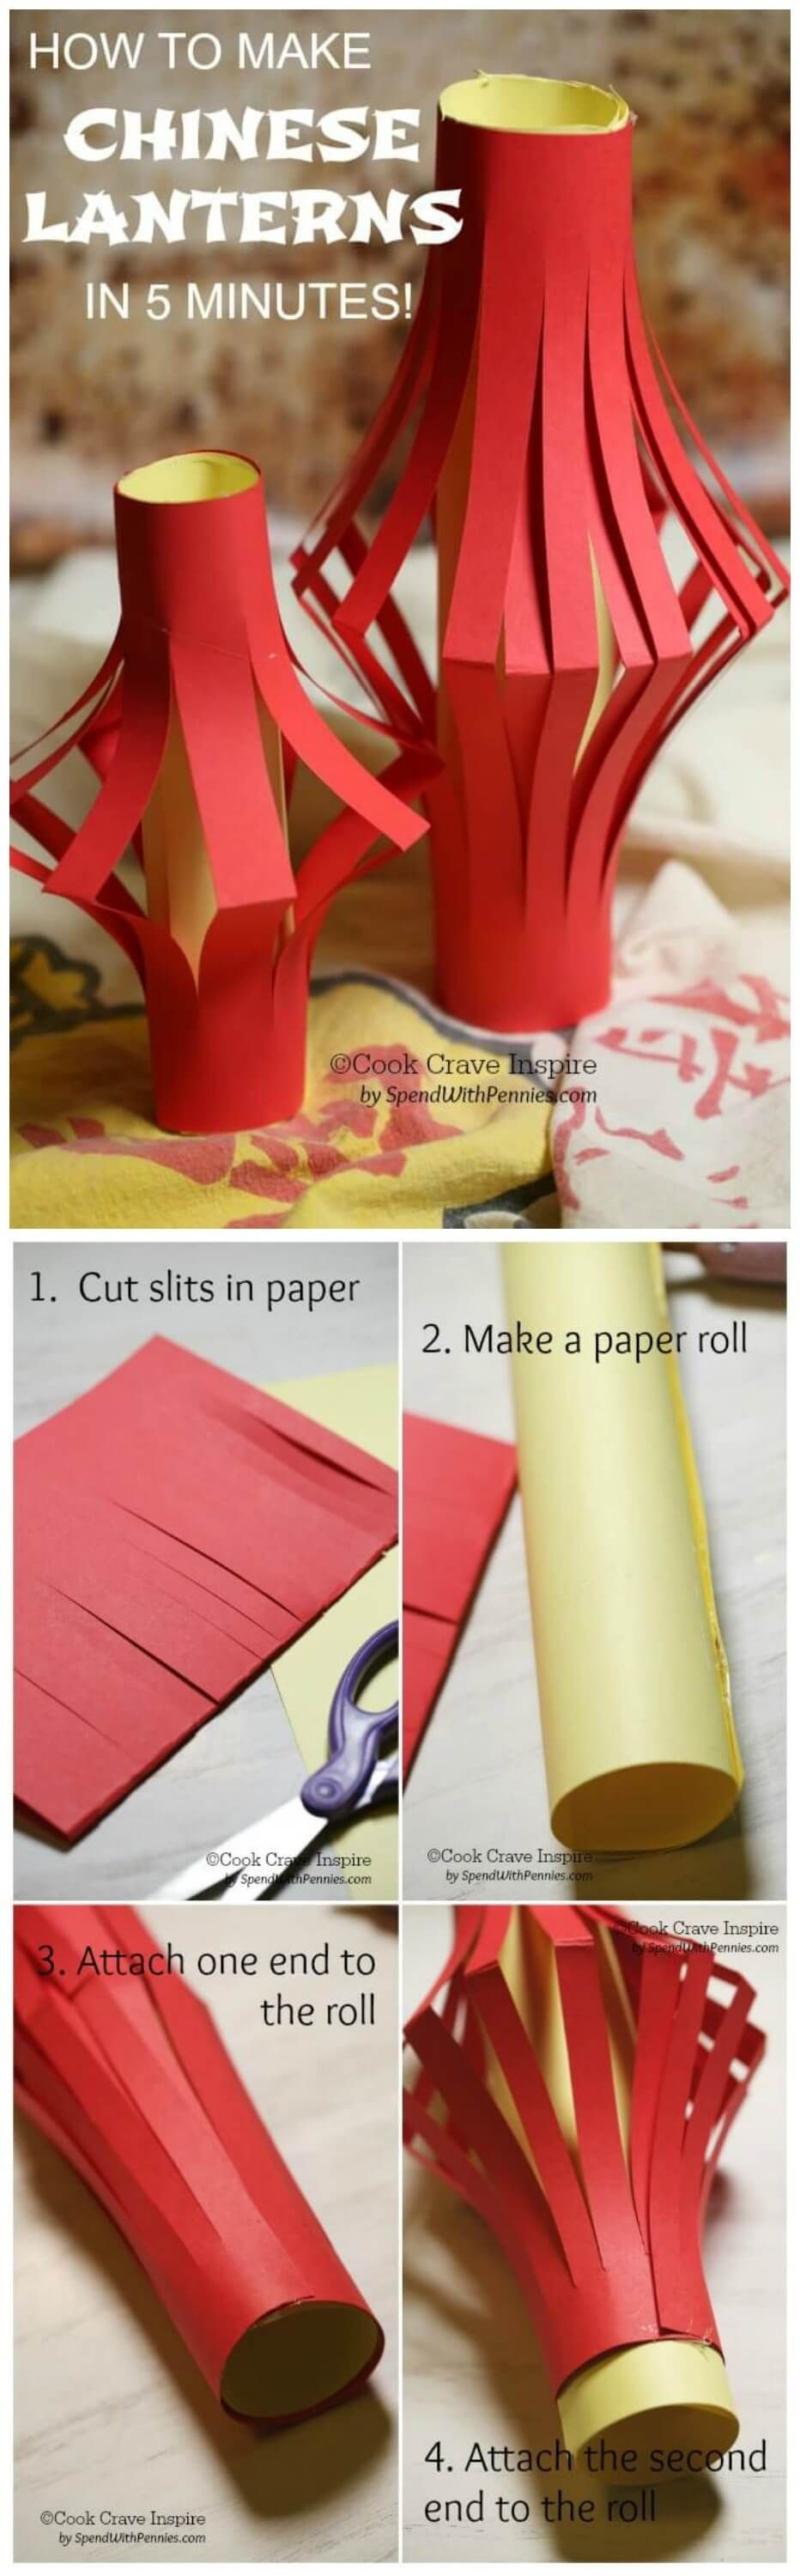 Did you know you can make your own Chinese lanterns in ...